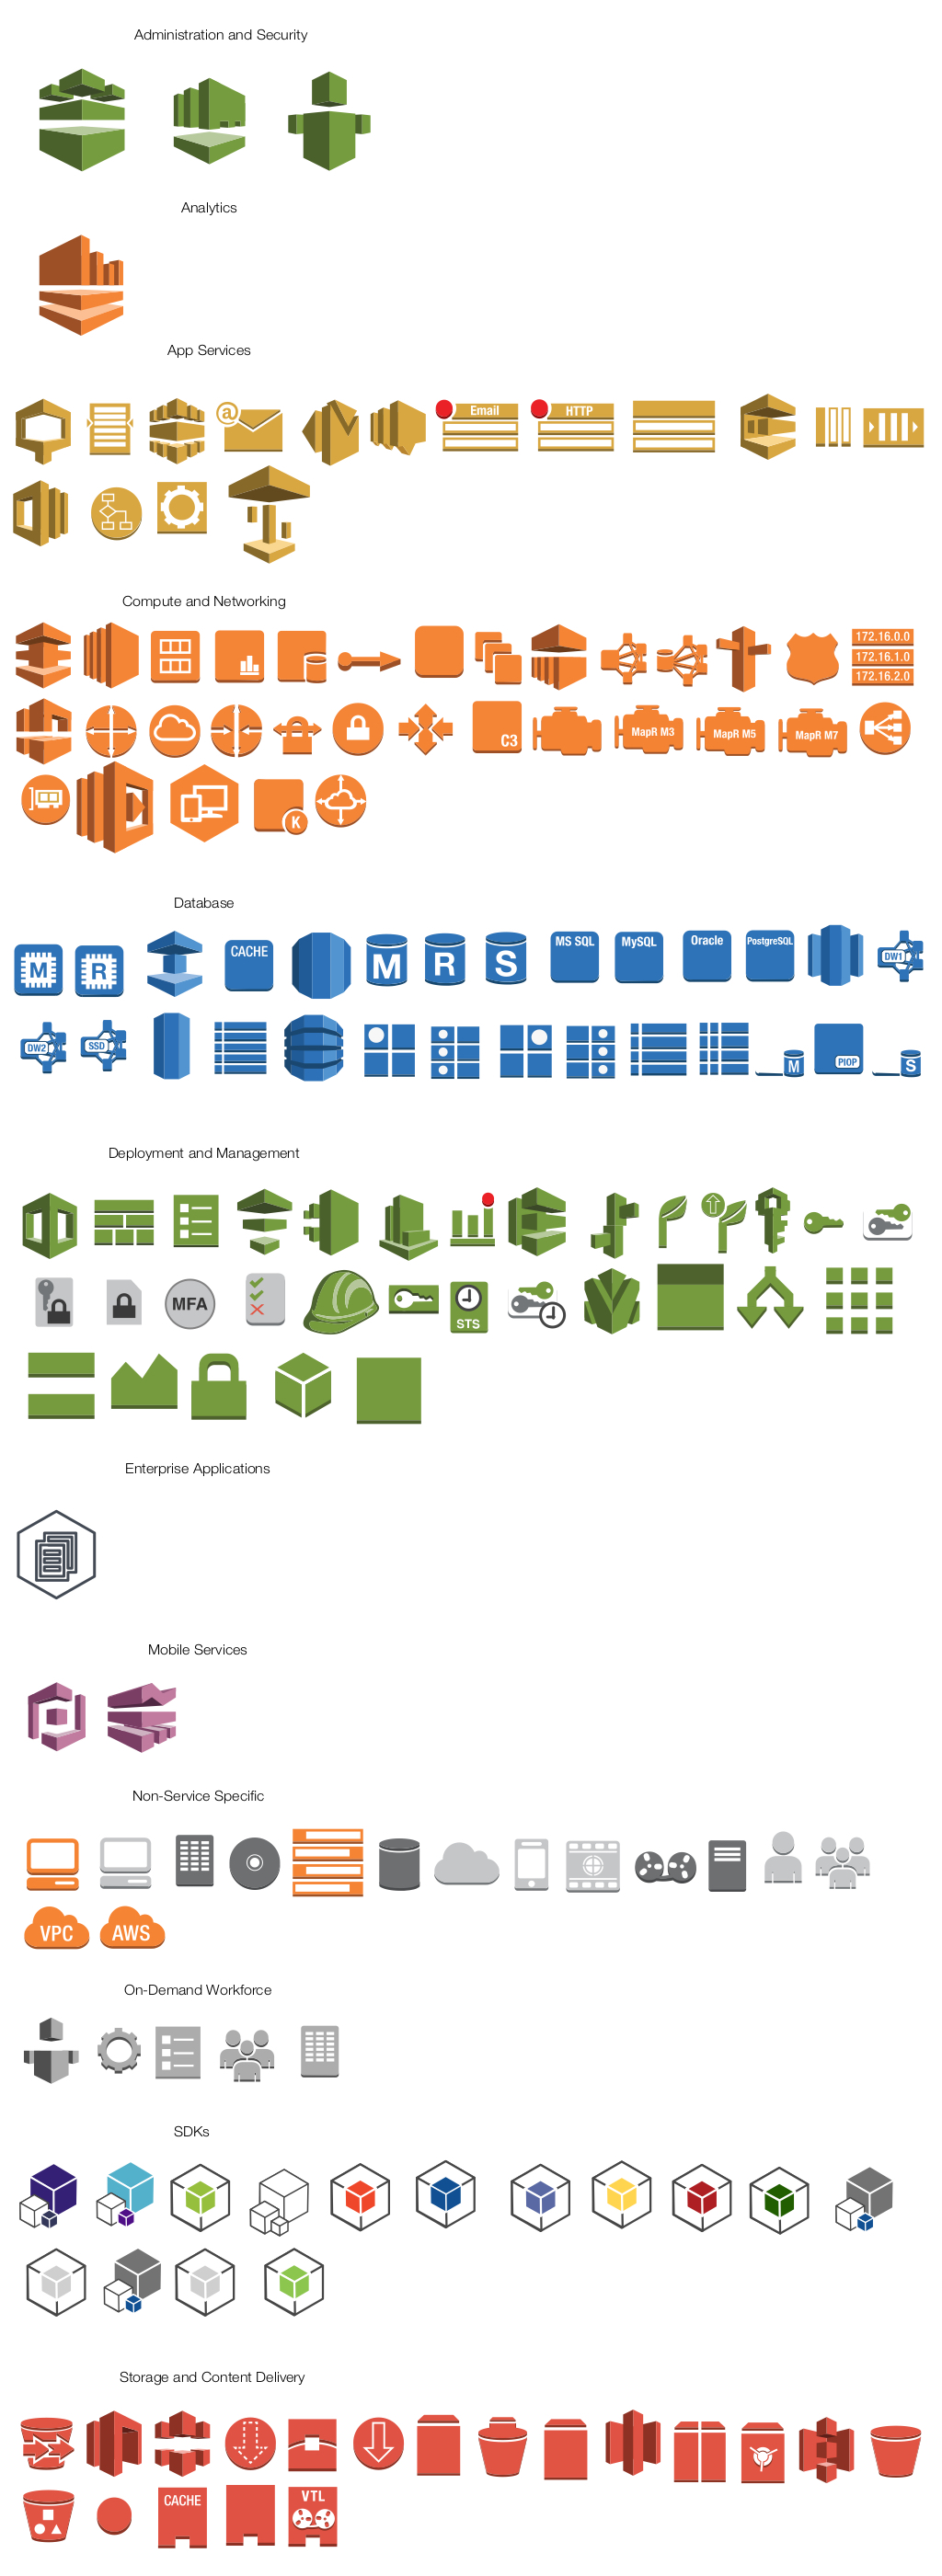 AWS ARchitecture Stencils: Amazon Elastic Compute Cloud (EC2), Instance, Instances, AMI, DB on Instance, Instance with CloudWatch, Elastic IP, Amazon Elastic MapReduce, Cluster, HDFS Cluster, Auto Scaling, Amazon Simple Storage Service (S3), Bucket, Bucket with Objects, Object, AWS Import/Export, AWS Storage Gateway Service, Amazon Elastic Block Storage (EBS), Volume, Snapshot, Amazon CloudFront, Download Distribution, Streaming Distribution, Edge Location, Amazon CloudWatch, Alarm, Elastic Load Balancer, AWS Direct Connect, Amazon Route 53, Hosted Zone, Route Table, Amazon Virtual Private Cloud (VPC), VPN Connection, VPN Gateway, Customer Gateway, Internet Gateway, Router, Amazon SimpleDB, Domain, Item, Items, Attribute, Attributes, Amazon Relational Database Service (RDS), RDS DB Instance, RDS DB Instance Standby (Multi-AZ), RDS DB Instance Read Replica, Oracle DB Instance, MySQL DB Instance, Table, Amazon DynamoDB, Amazon ElastiCache, ElastiCache Cache Node, Amazon Simple Email Service (SES), Email, Amazon Simple Notification Service (SNS), Topic, Email Notification, HTTP Notification, Amazon Simple Queue Service (SQS), Queue, Message, Amazon Simple Workflow Service (SWF), Decider, Worker, AWS CloudFormation, Template, Stack, AWS Elastic Beanstalk, Application, Amazon Mechanical Turk, Human Intelligence Tasks (HIT), Assignment/Task, Workers, Requester, Users, User, Client, Mobile Client, Multimedia, Corporate Data Center, Traditional Server, Internet, AWS Management Console, IAM Add-on, Example: IAM Add-on, Availability Zone, Region, Security Group, Elastic Beanstalk Container, EC2 Instance Contents, VPC Subnet, Server Contents, Virtual Private Cloud, AWS Cloud, Corporate Data Center, Auto Scaling Group